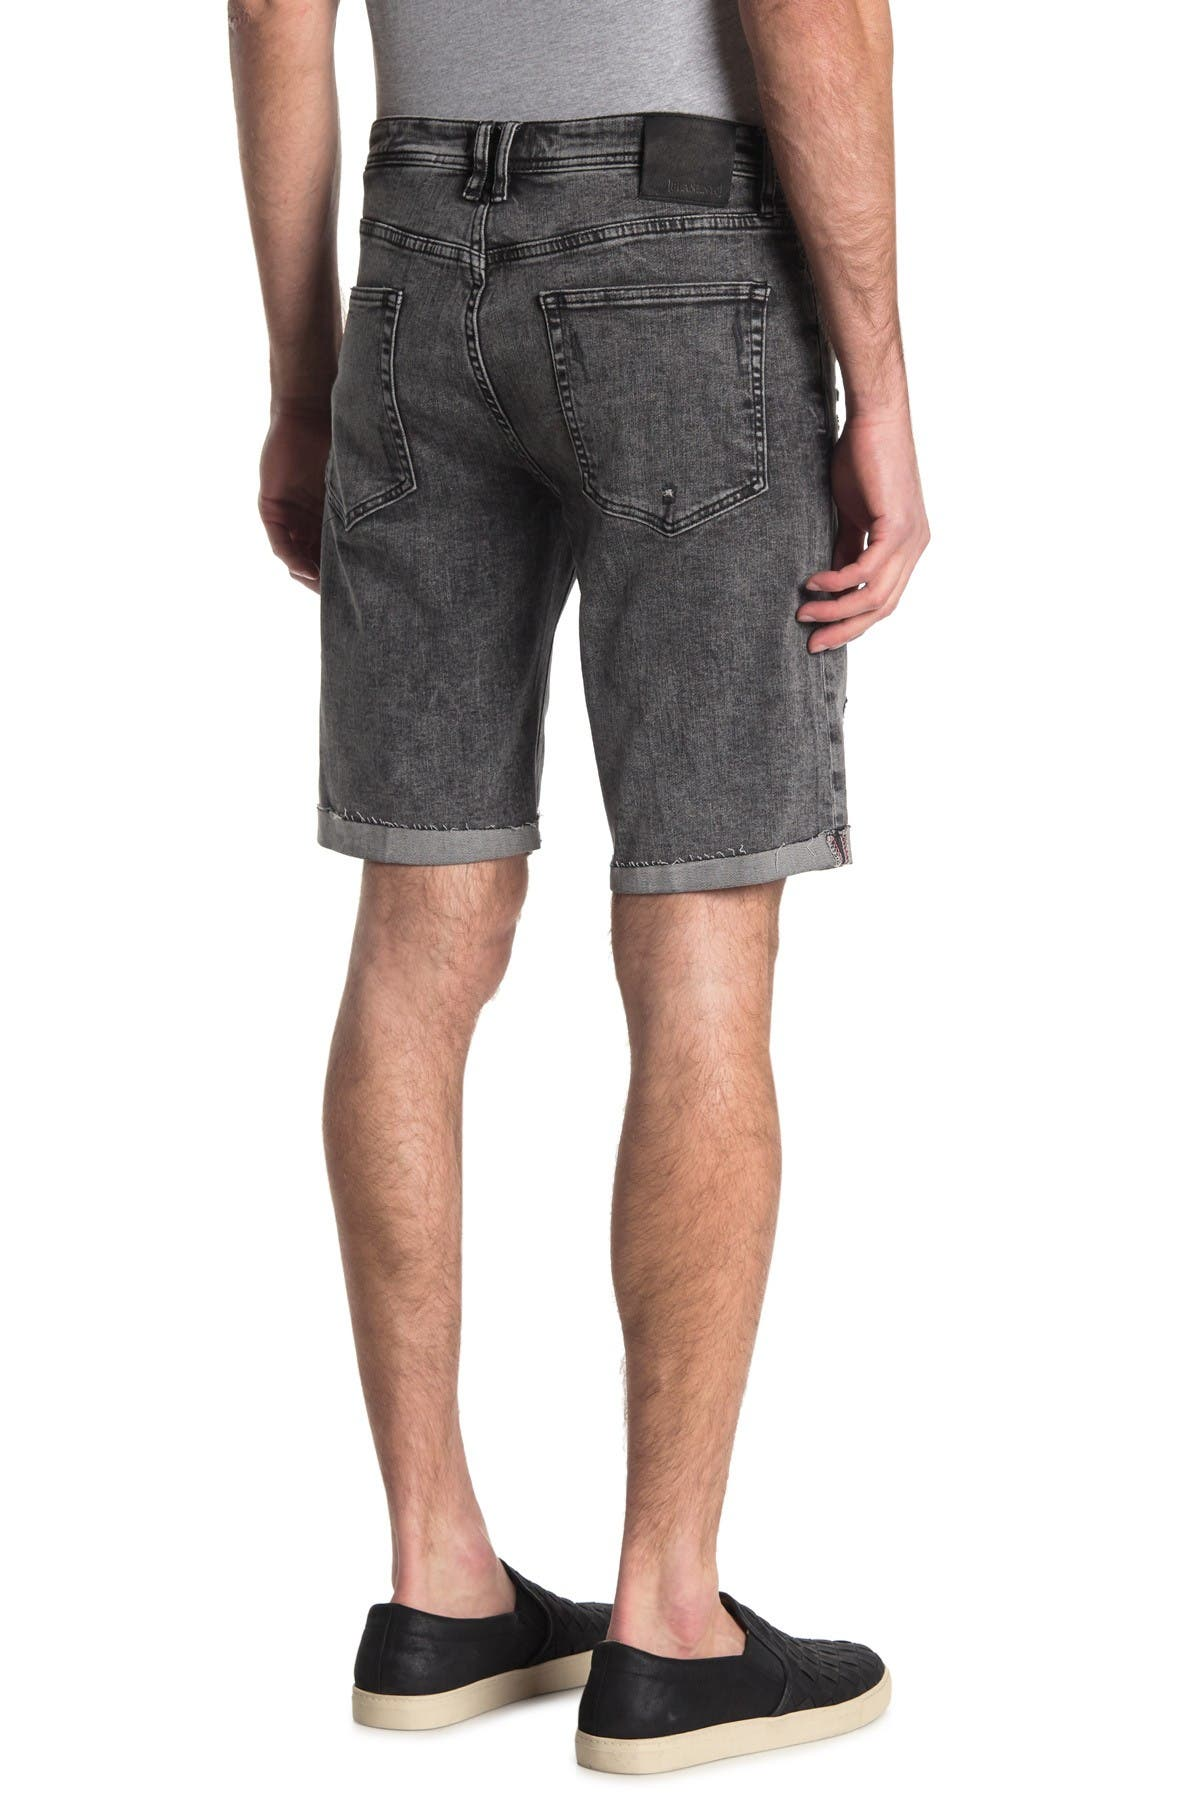 Image of BLANKNYC Denim Wooster Distressed Denim Shorts